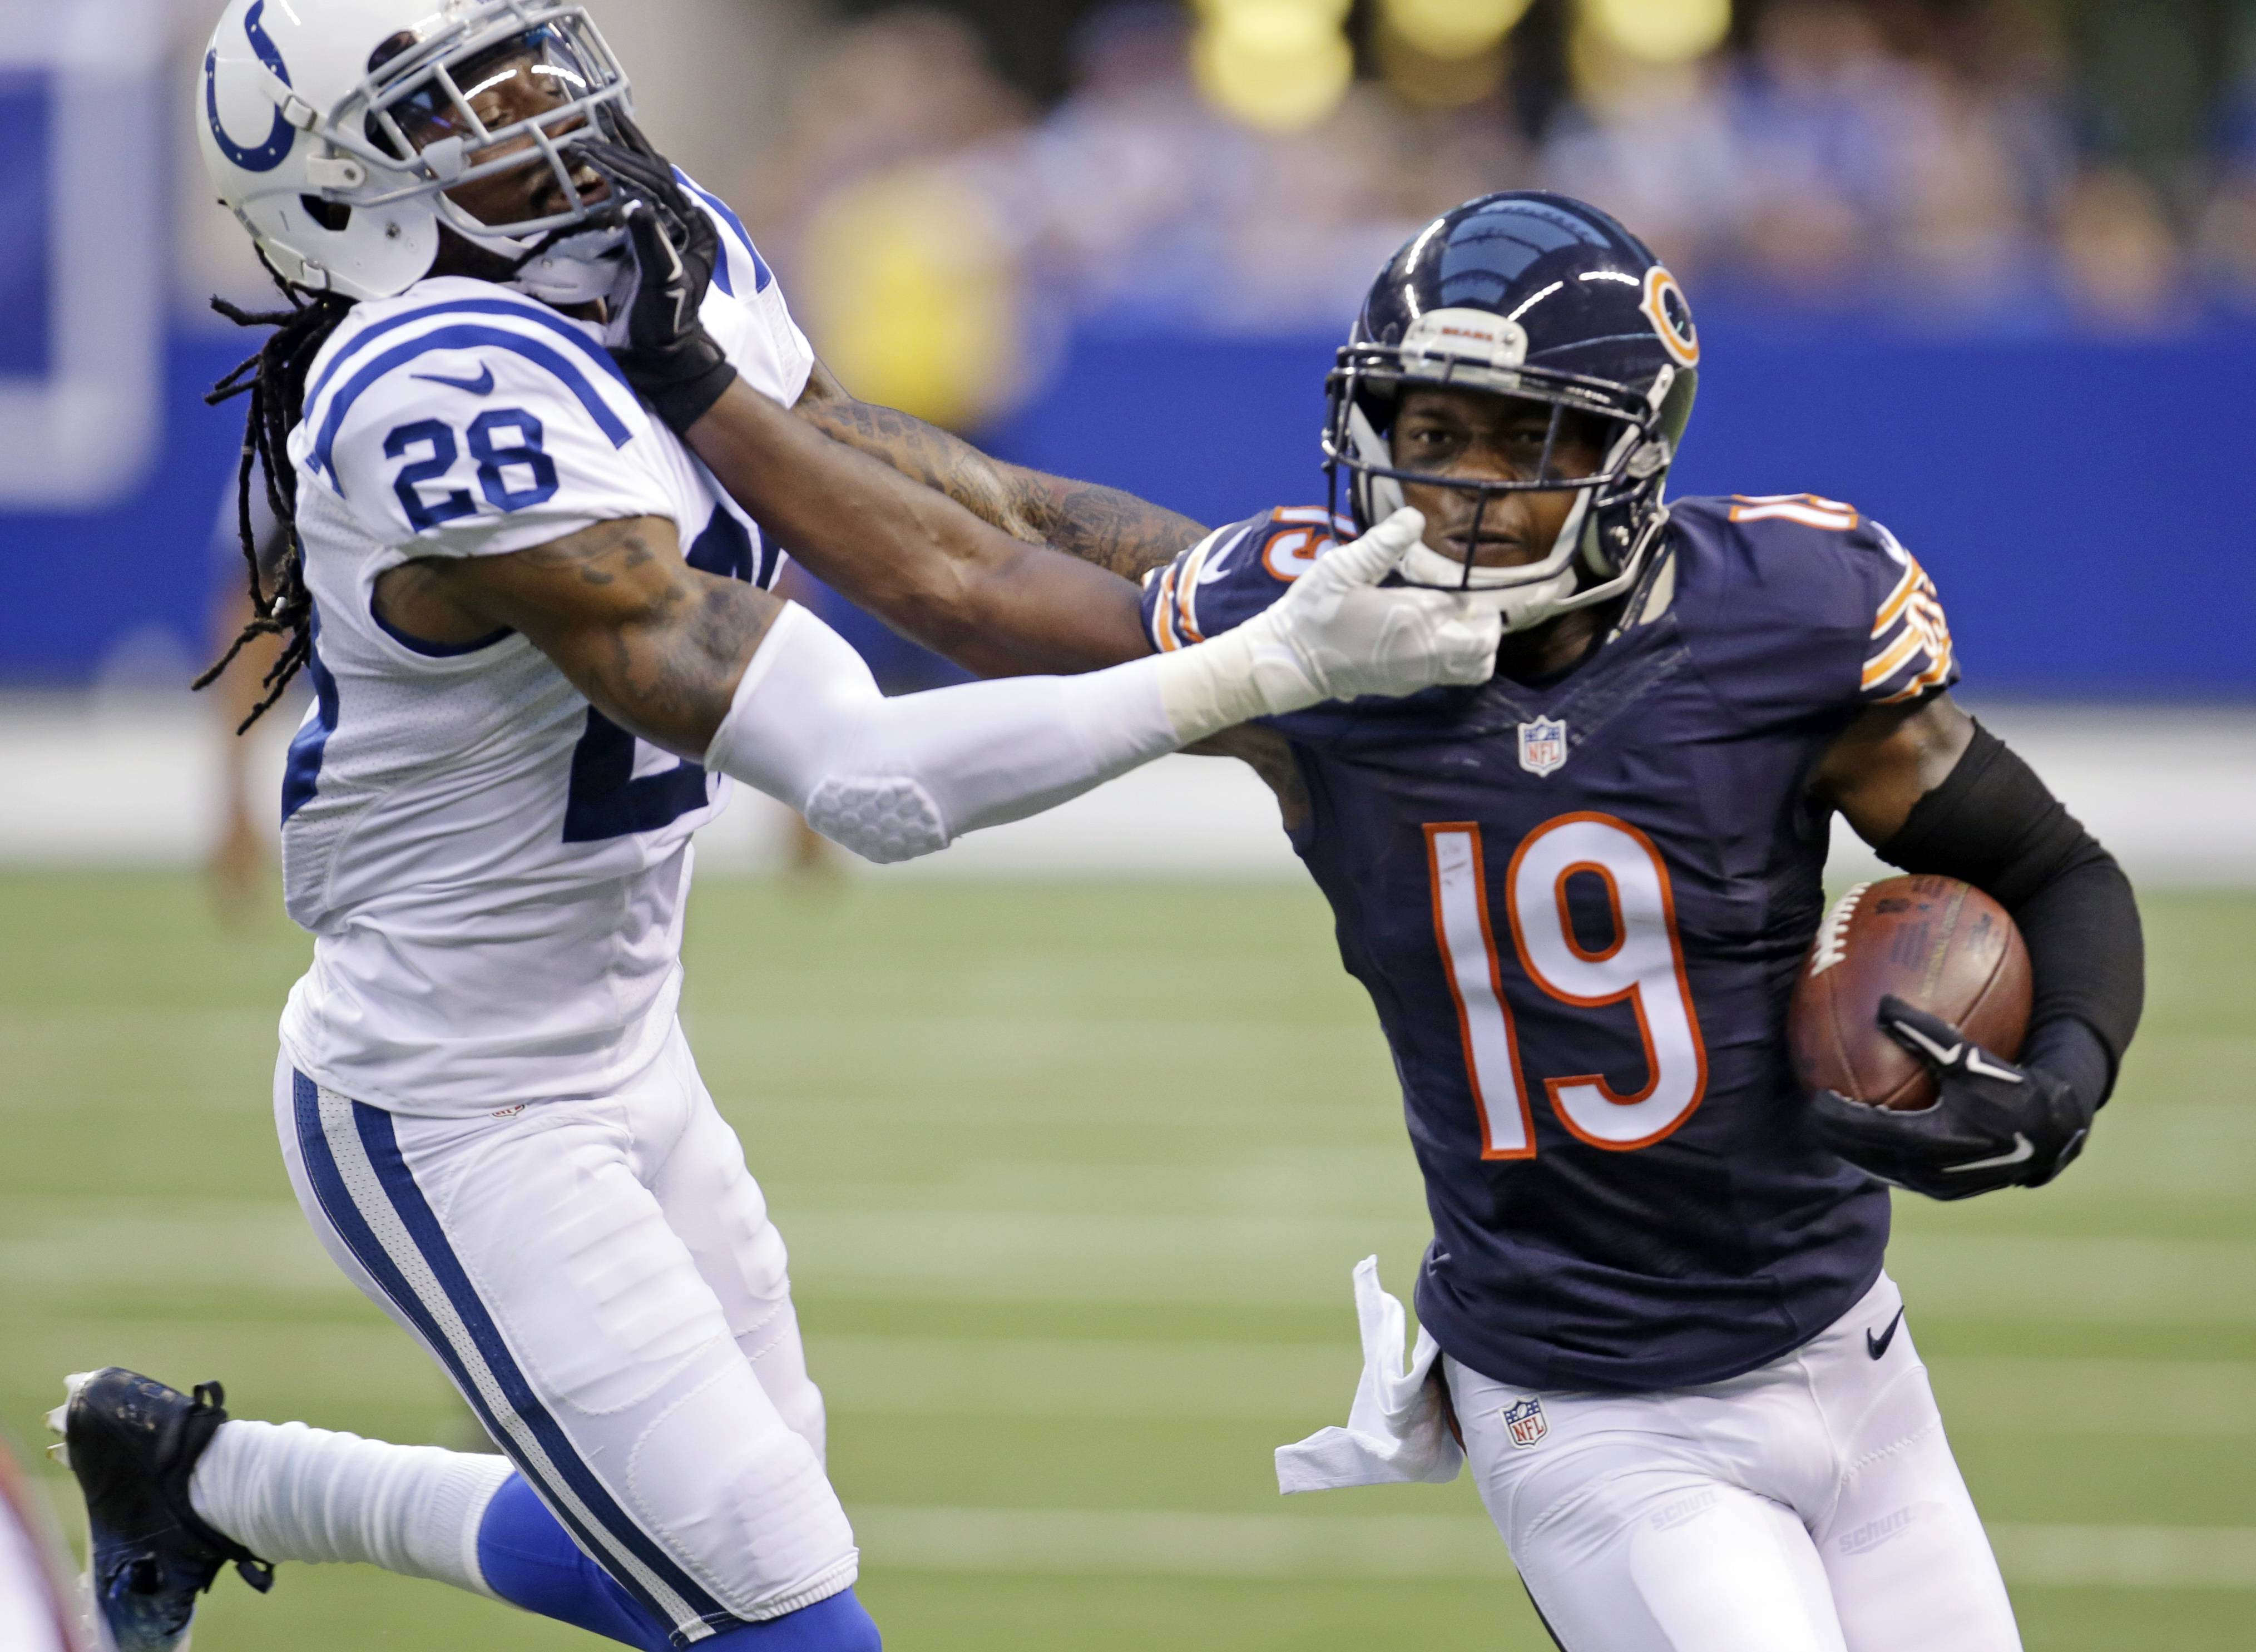 Veteran wide receiver Eddie Royal is back at full strength after suffering a concussion almost a month ago, adding more depth at a position the Bears consider one of their deepest. Only six wideouts, at most, are expected to make the 53-man roster, so some hard decisions must be made by Saturday, when final cuts come down.